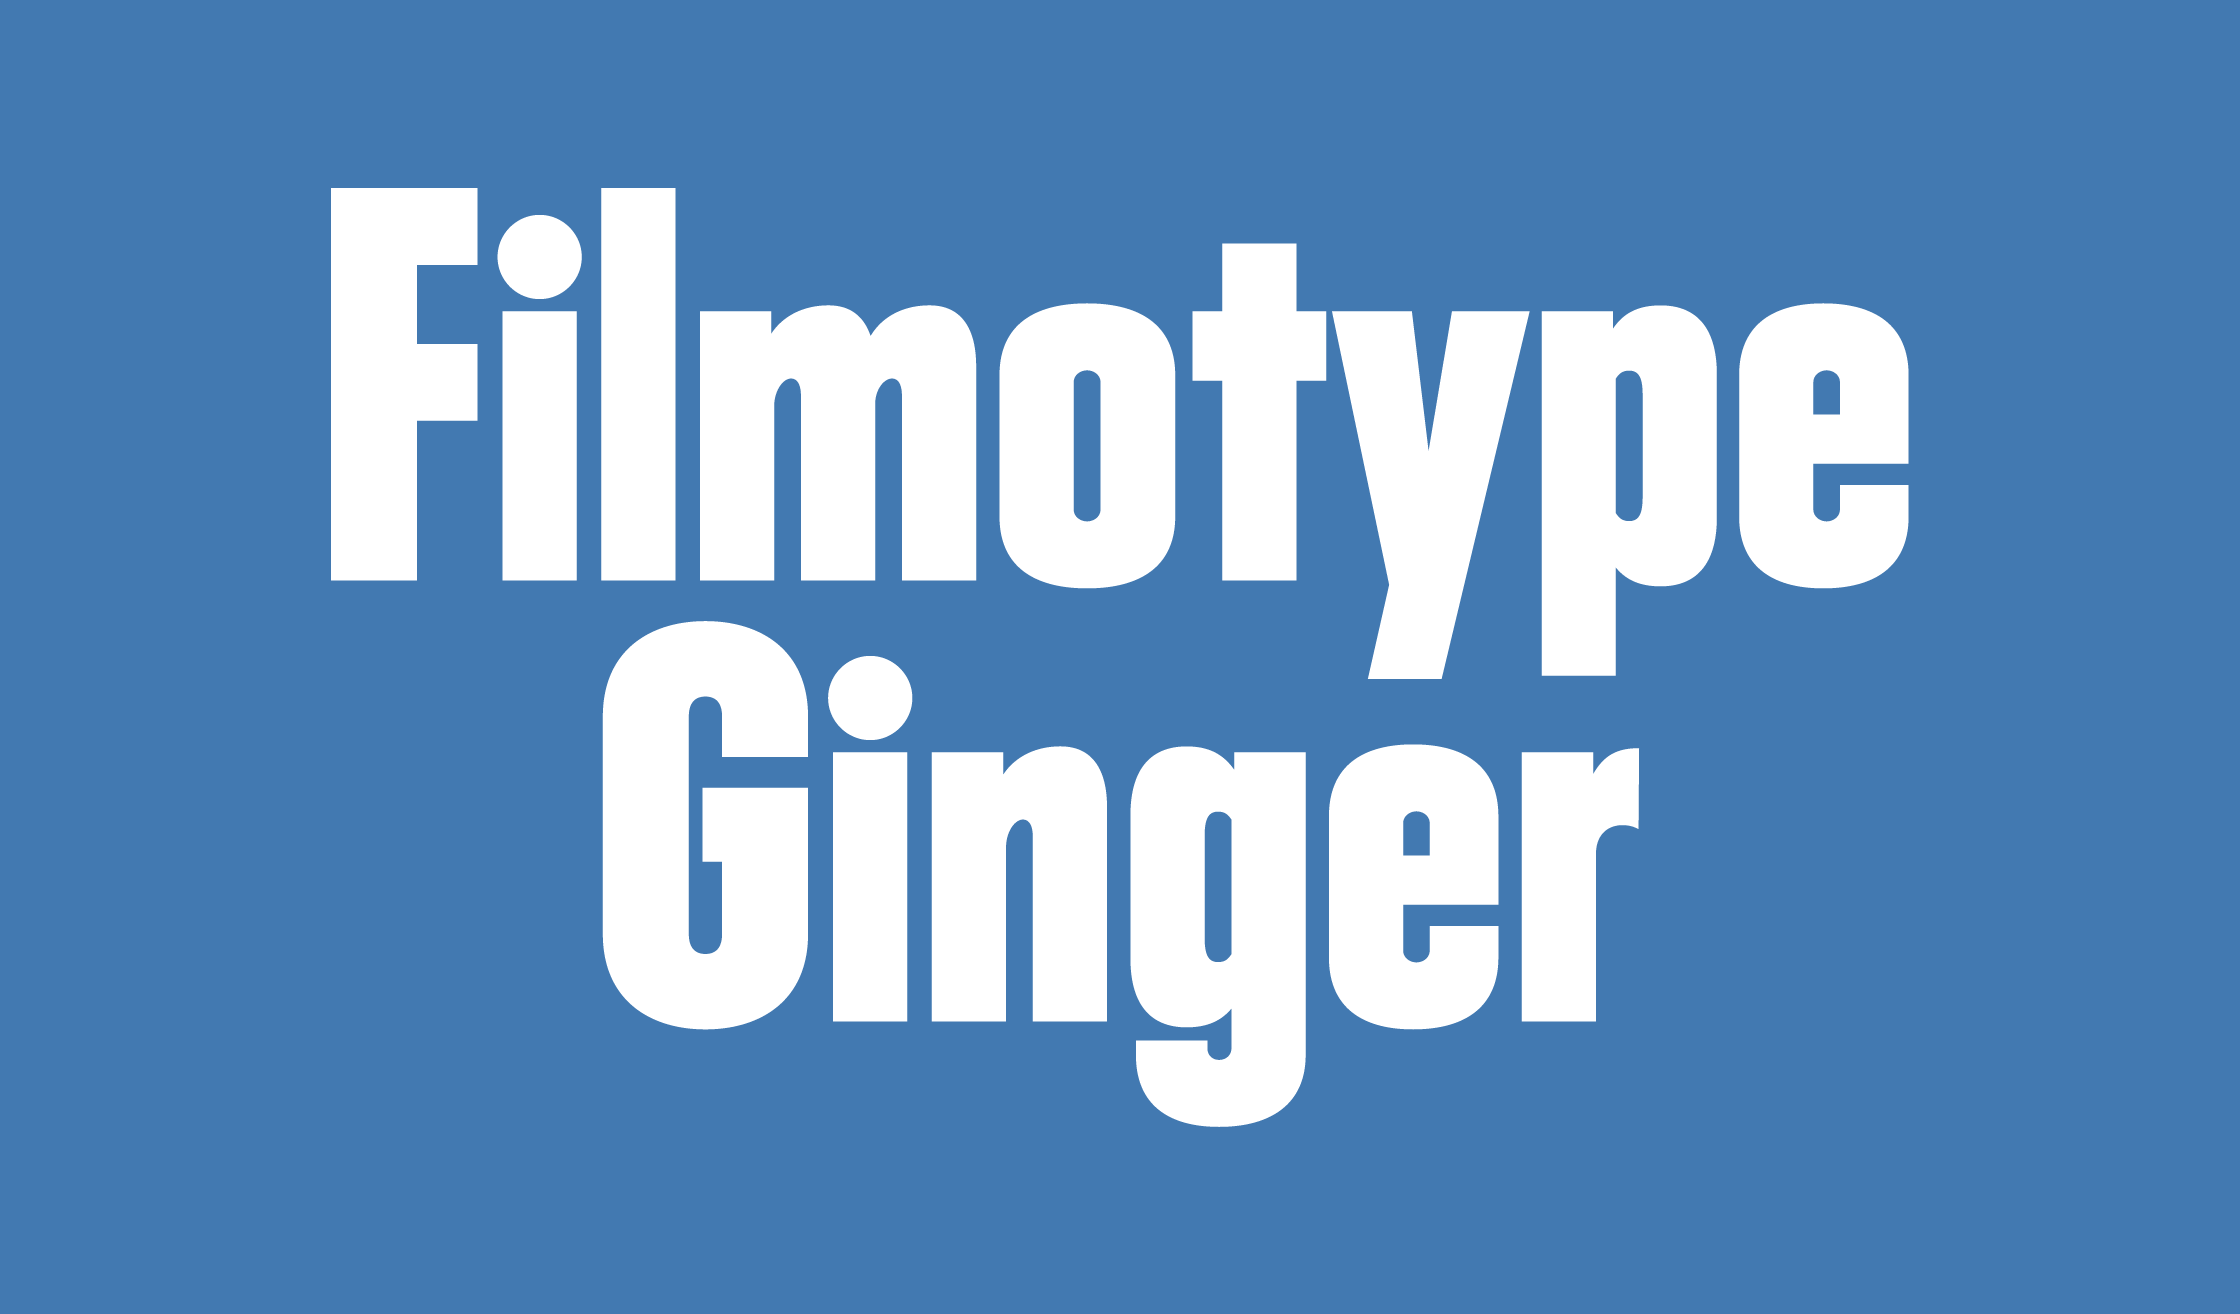 Filmotype Ginger Banner Name 2240